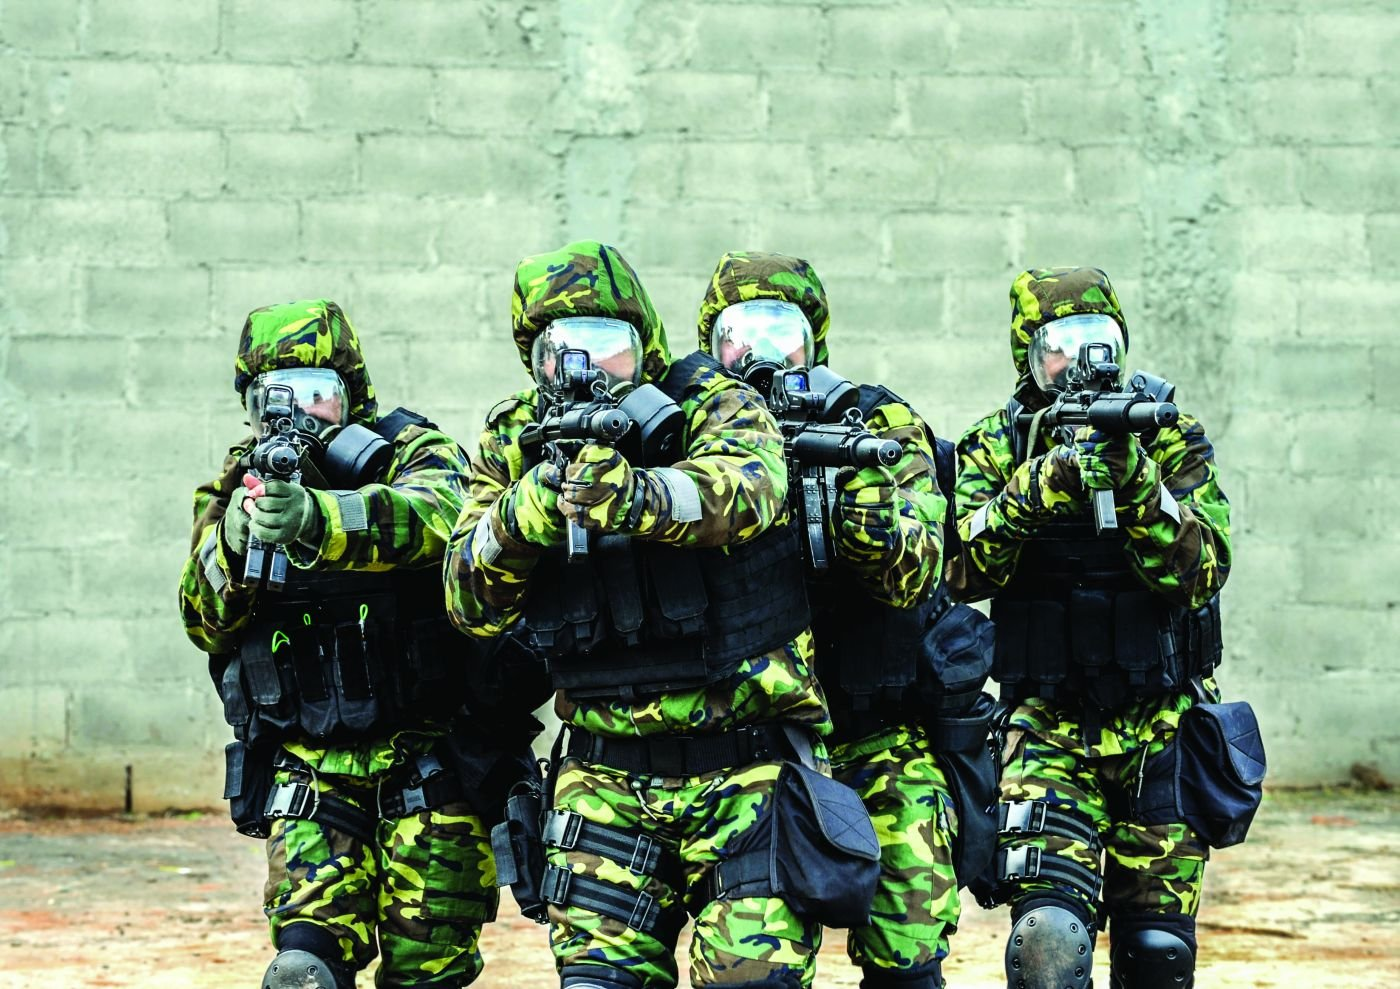 Brazil's Military Prepares to Fight Biological, Chemical, Nuclear Attacks during 2016 Rio Olympics